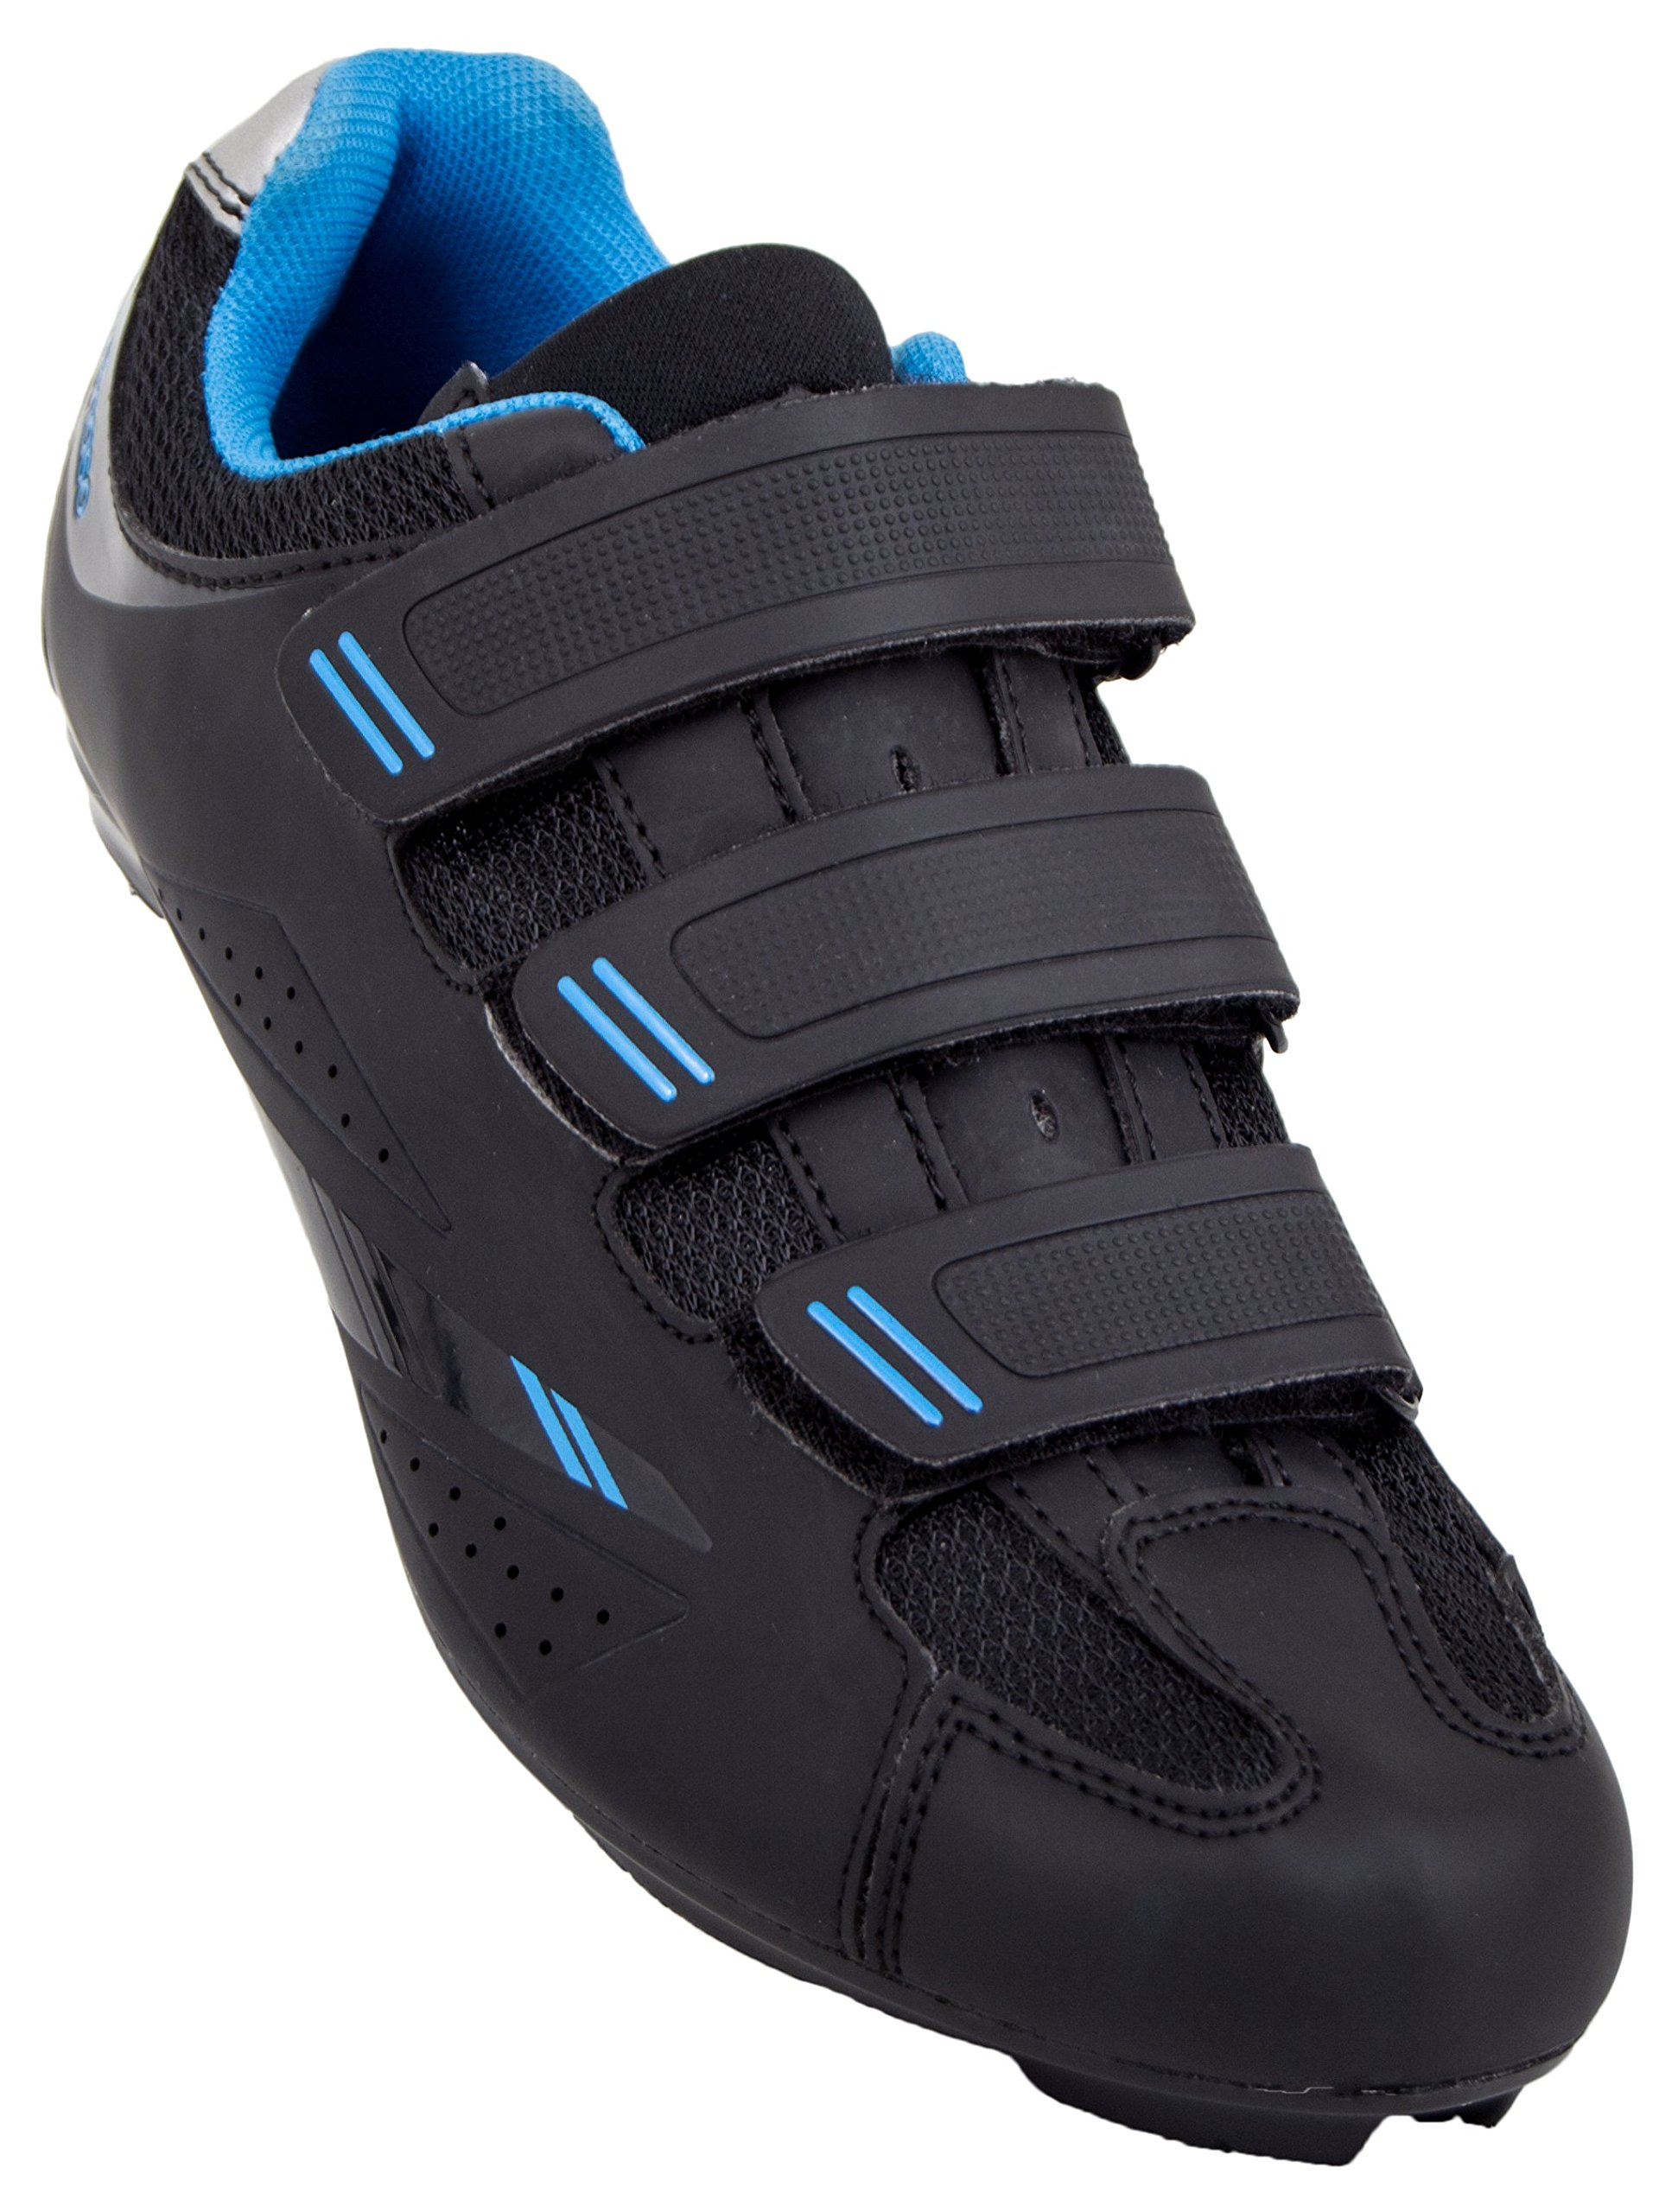 Tommaso Pista Women's Road Bike Cycling Spin Shoe Dual Cleat Compatibility- Black/Blue - 38